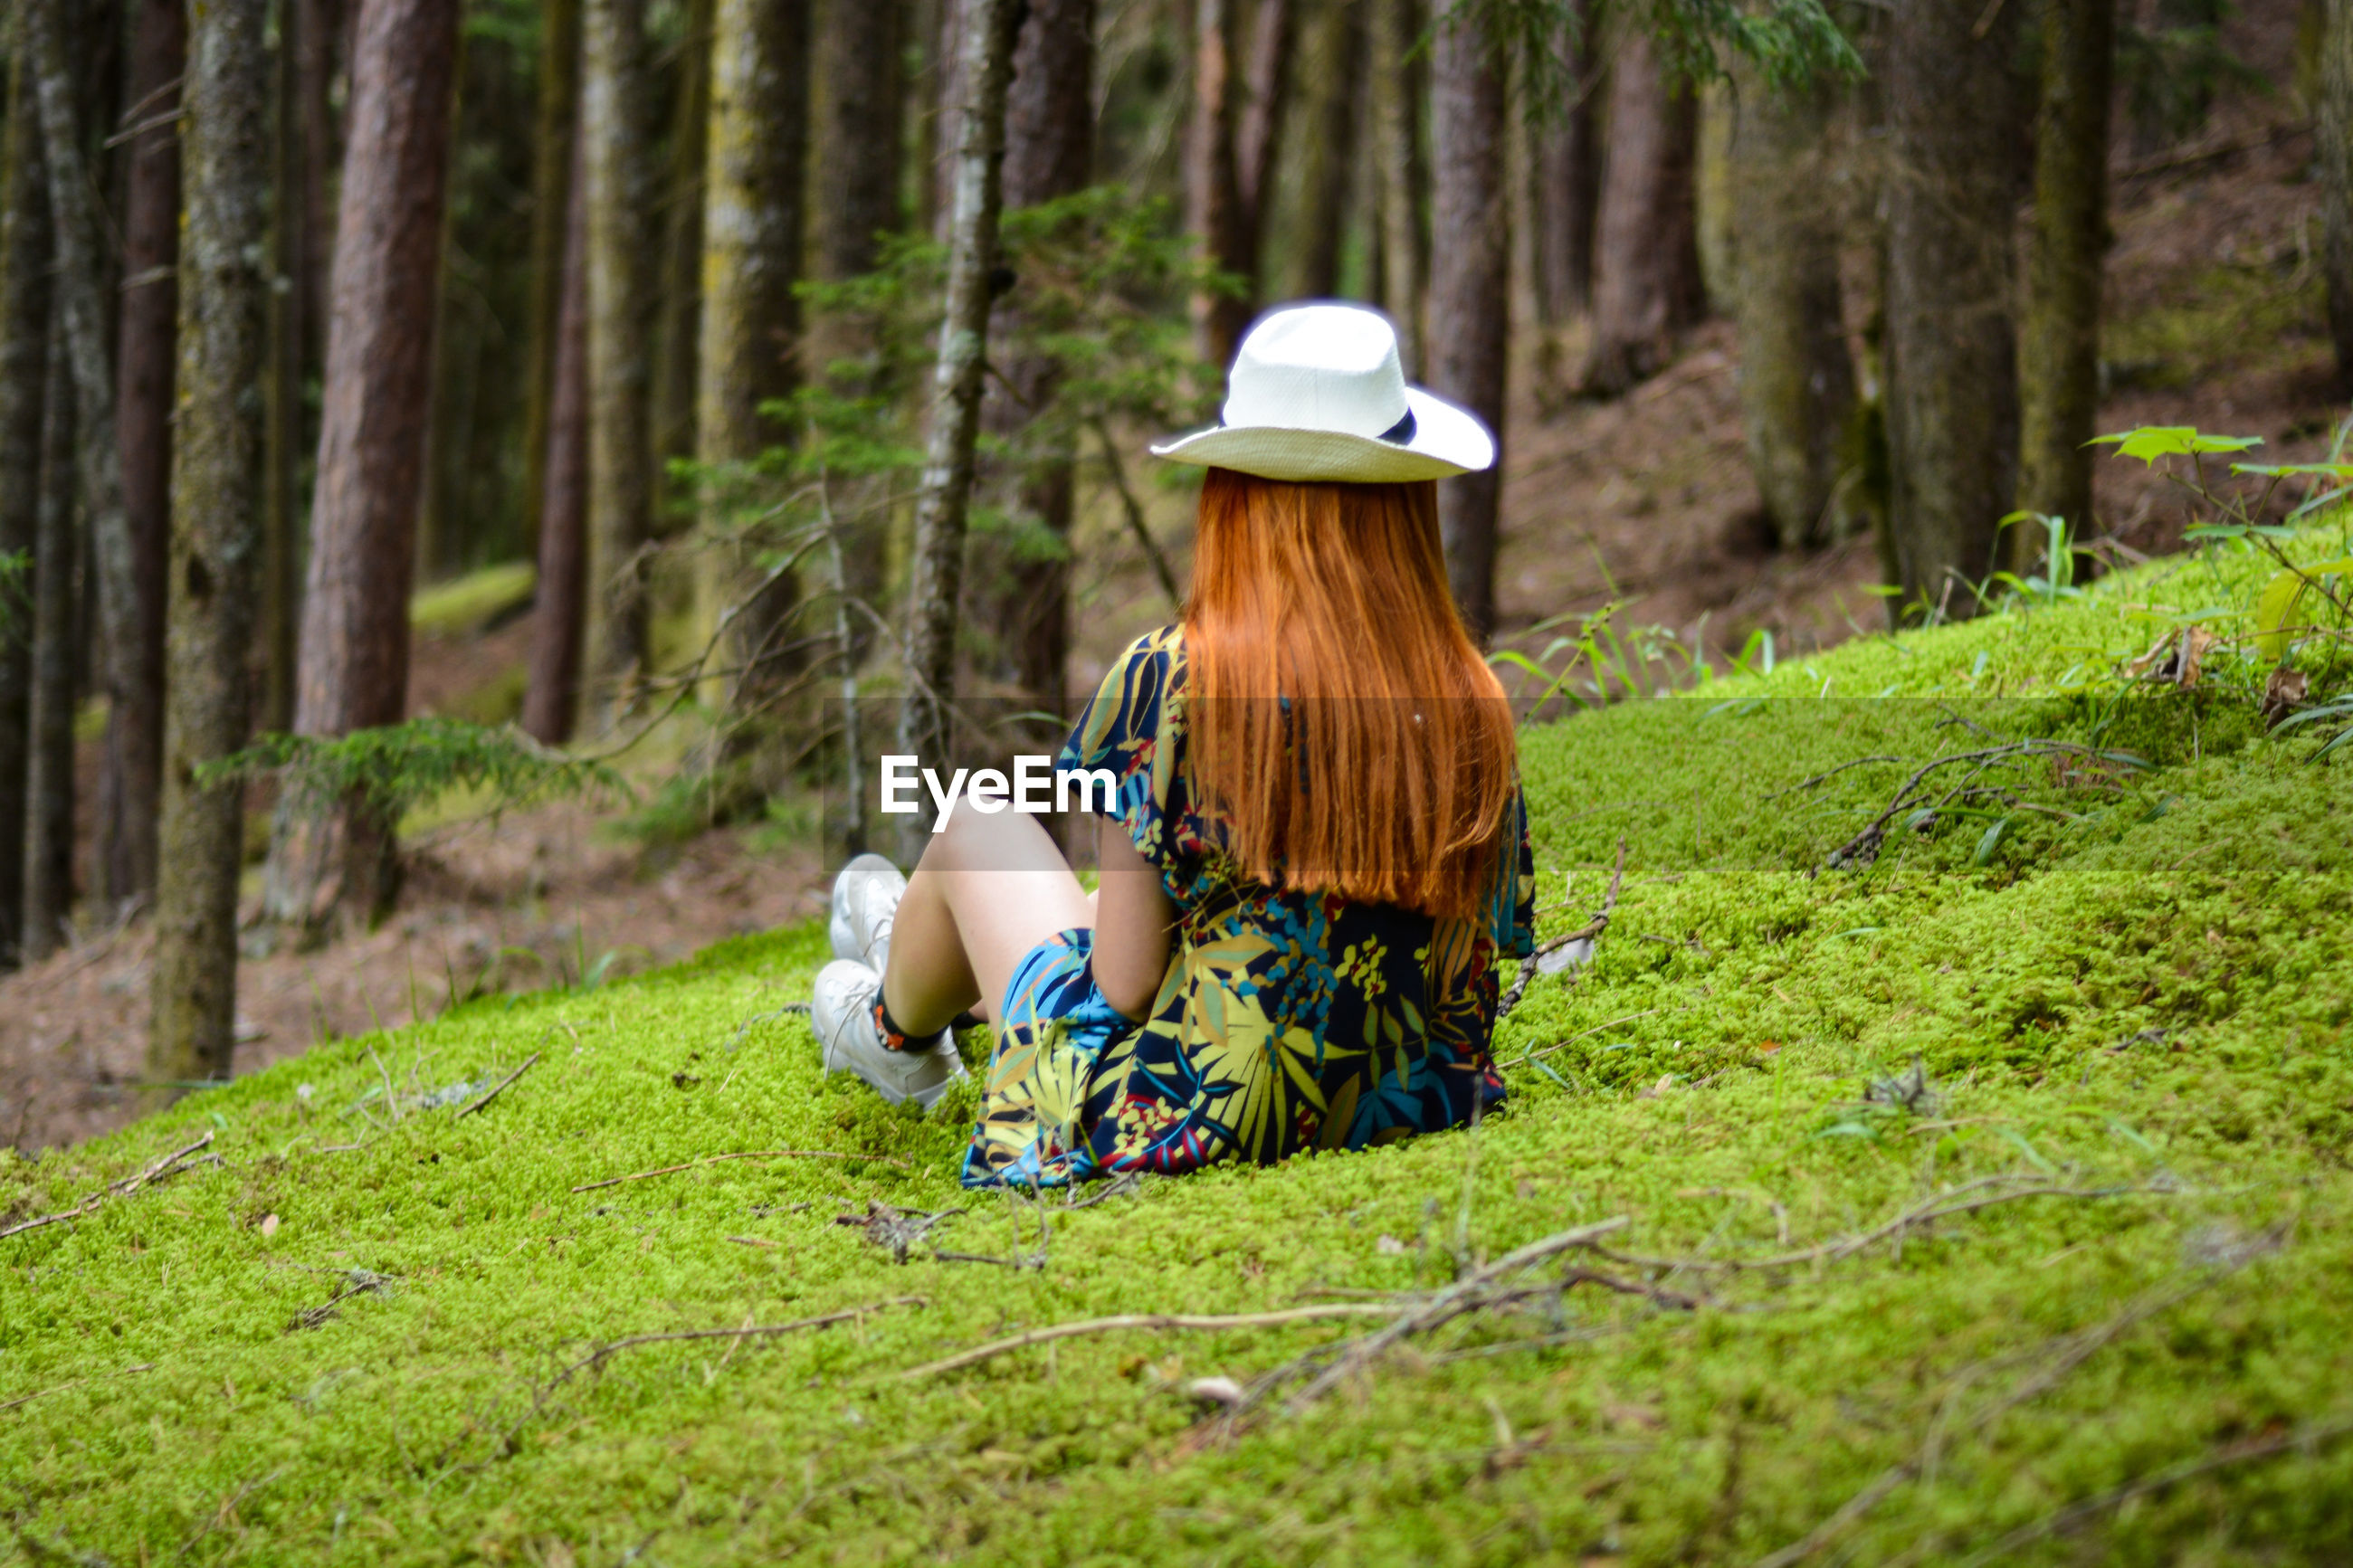 Rear view of woman wearing hat sitting on grass against tree trunks in forest